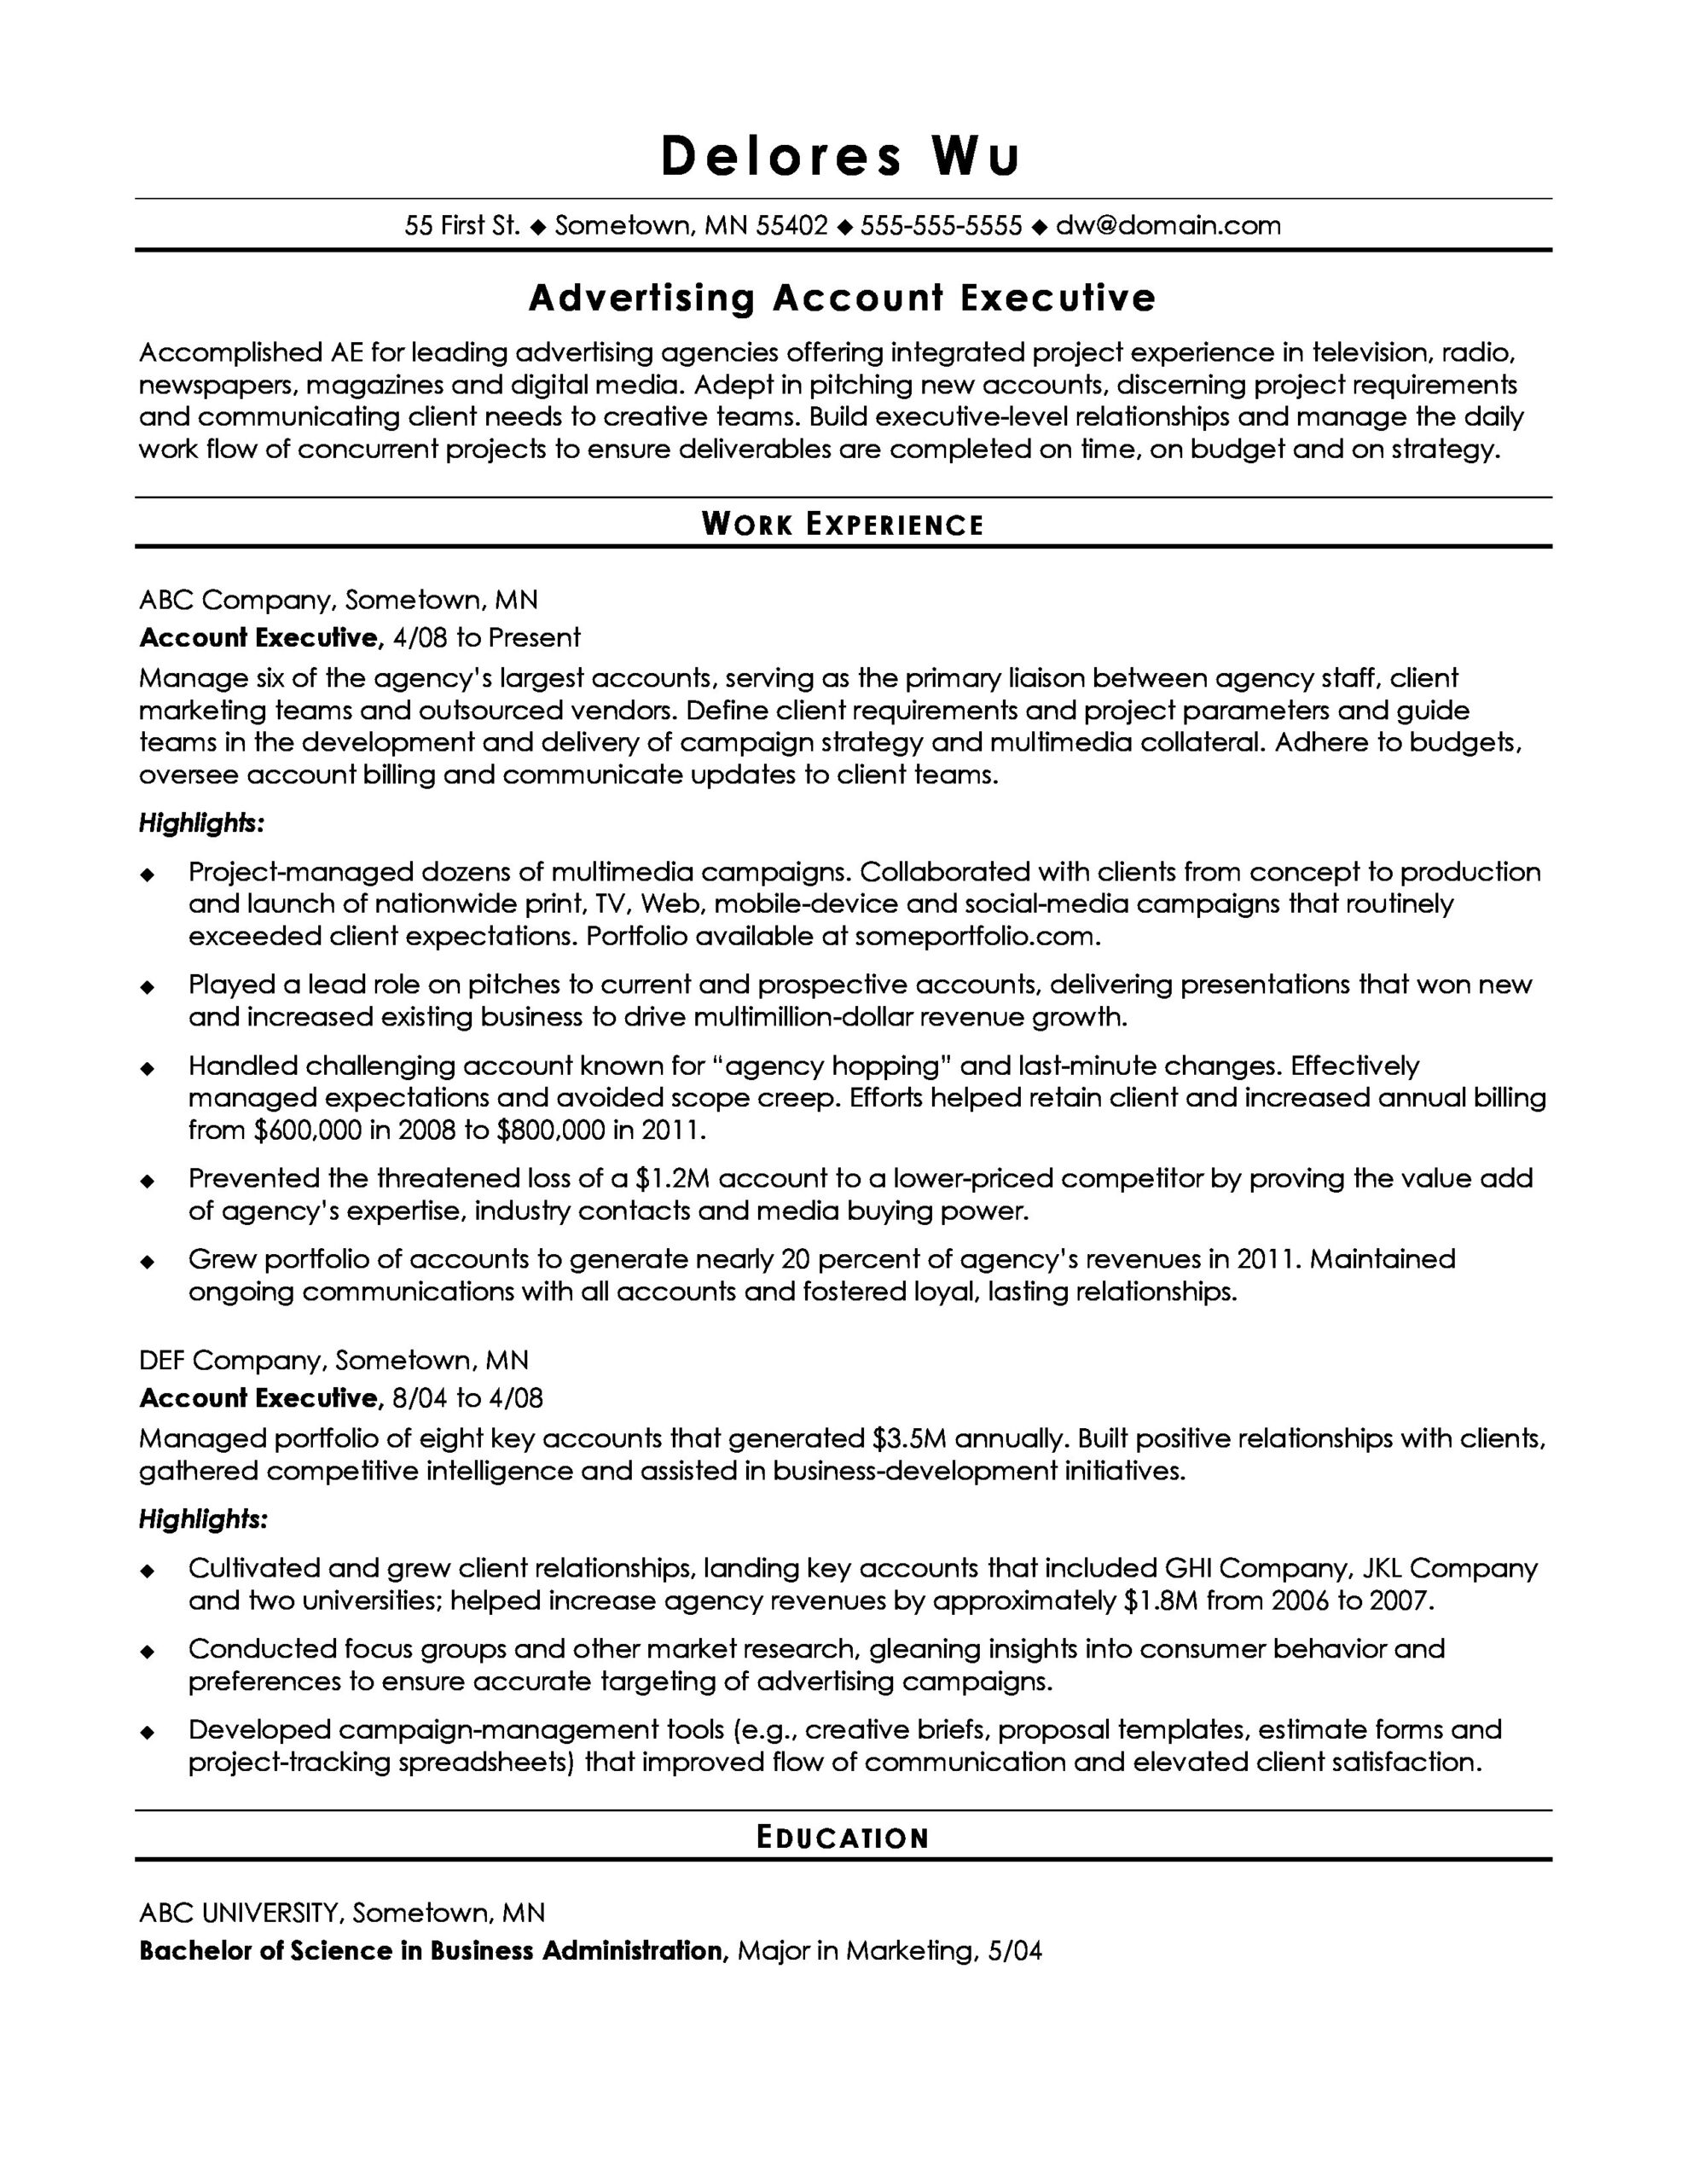 ats friendly resume schablone dosequisseries template free sample before nrbcfr director Resume Ats Friendly Resume Template Free 2019